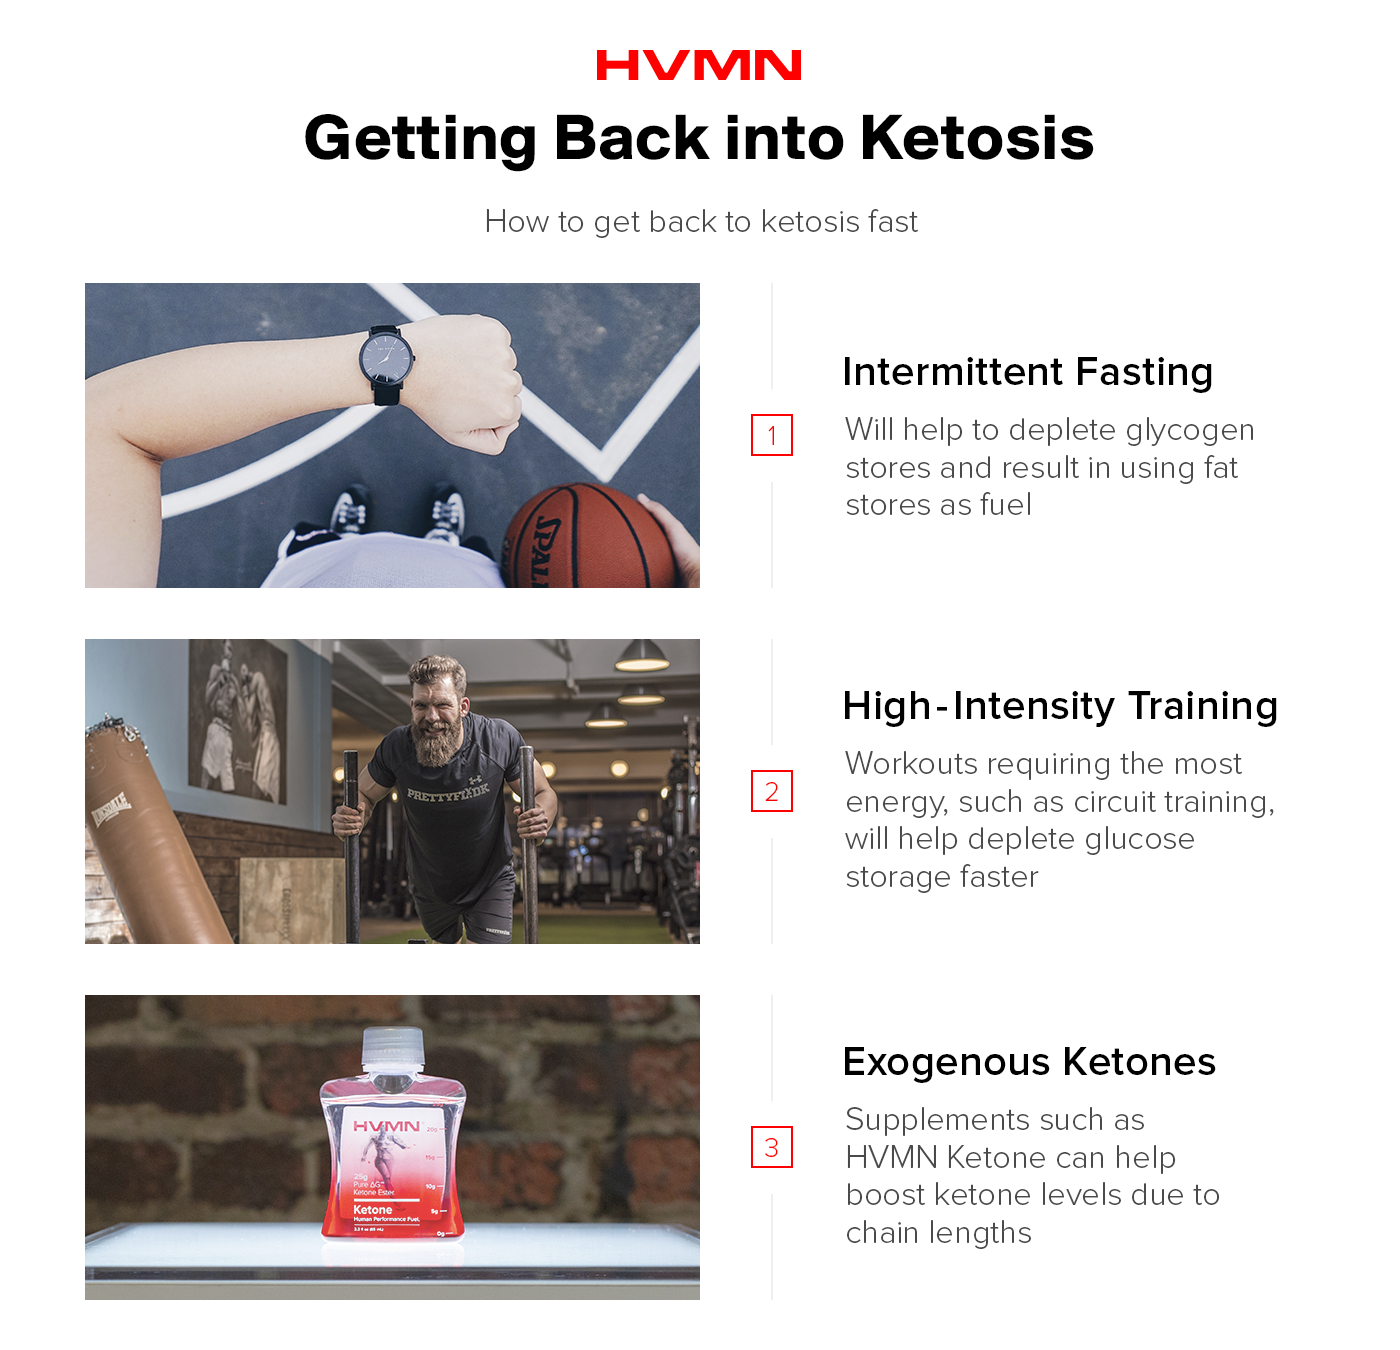 An image of a basketball player checking their watch, a man working out, and a bottle of HVMN ketone ester showing how to get back into ketosis